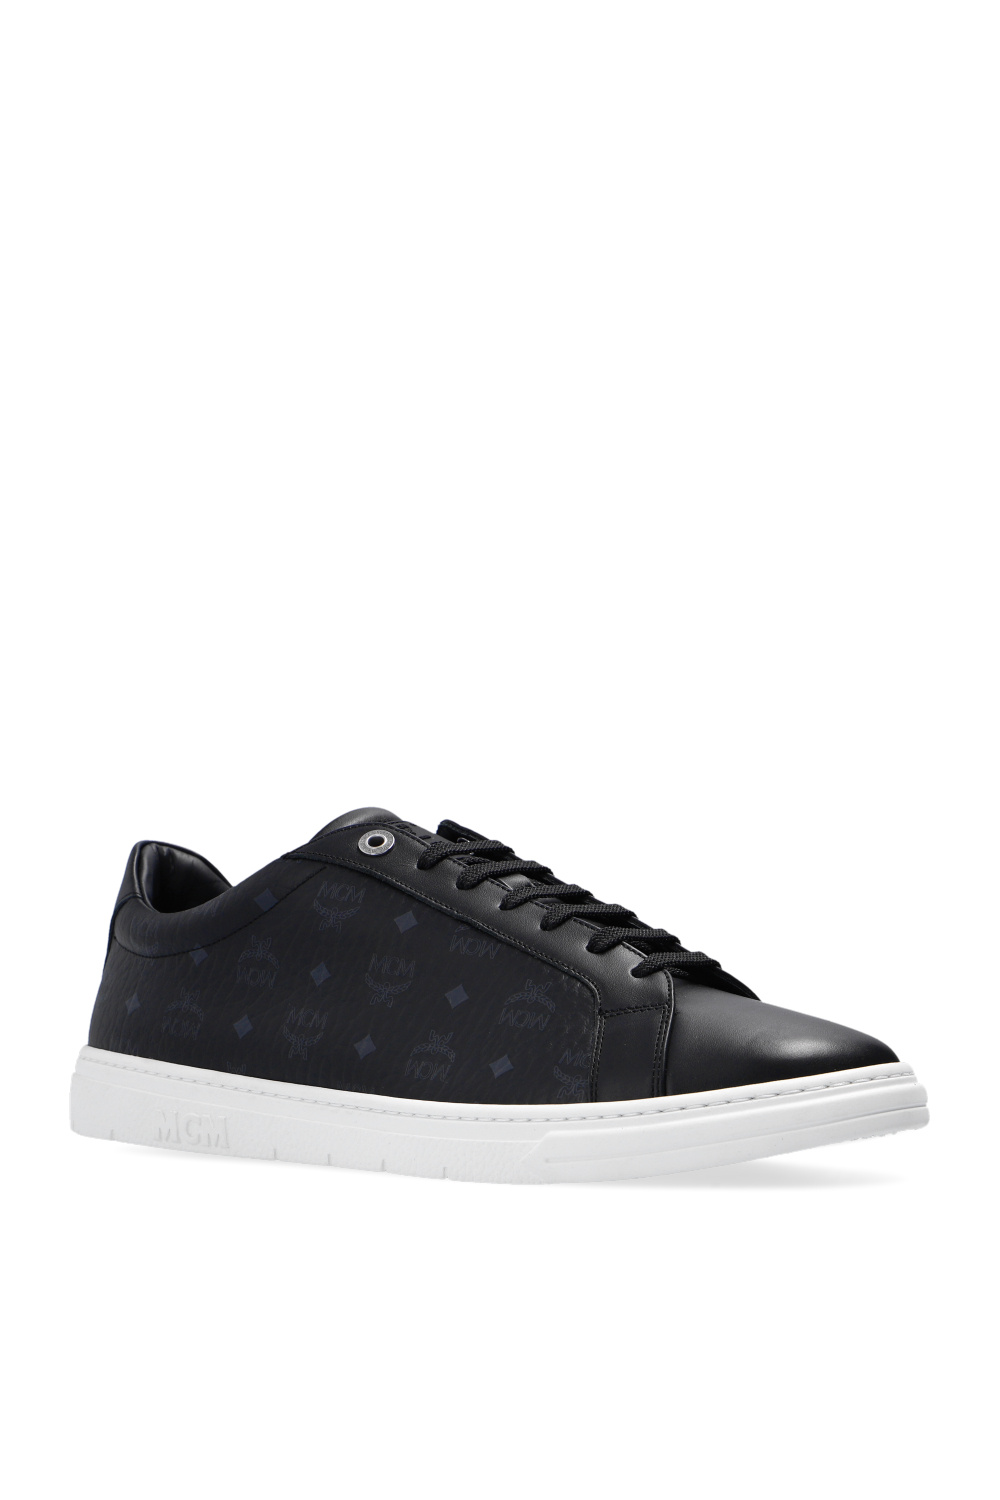 MCM Sneakers with logo